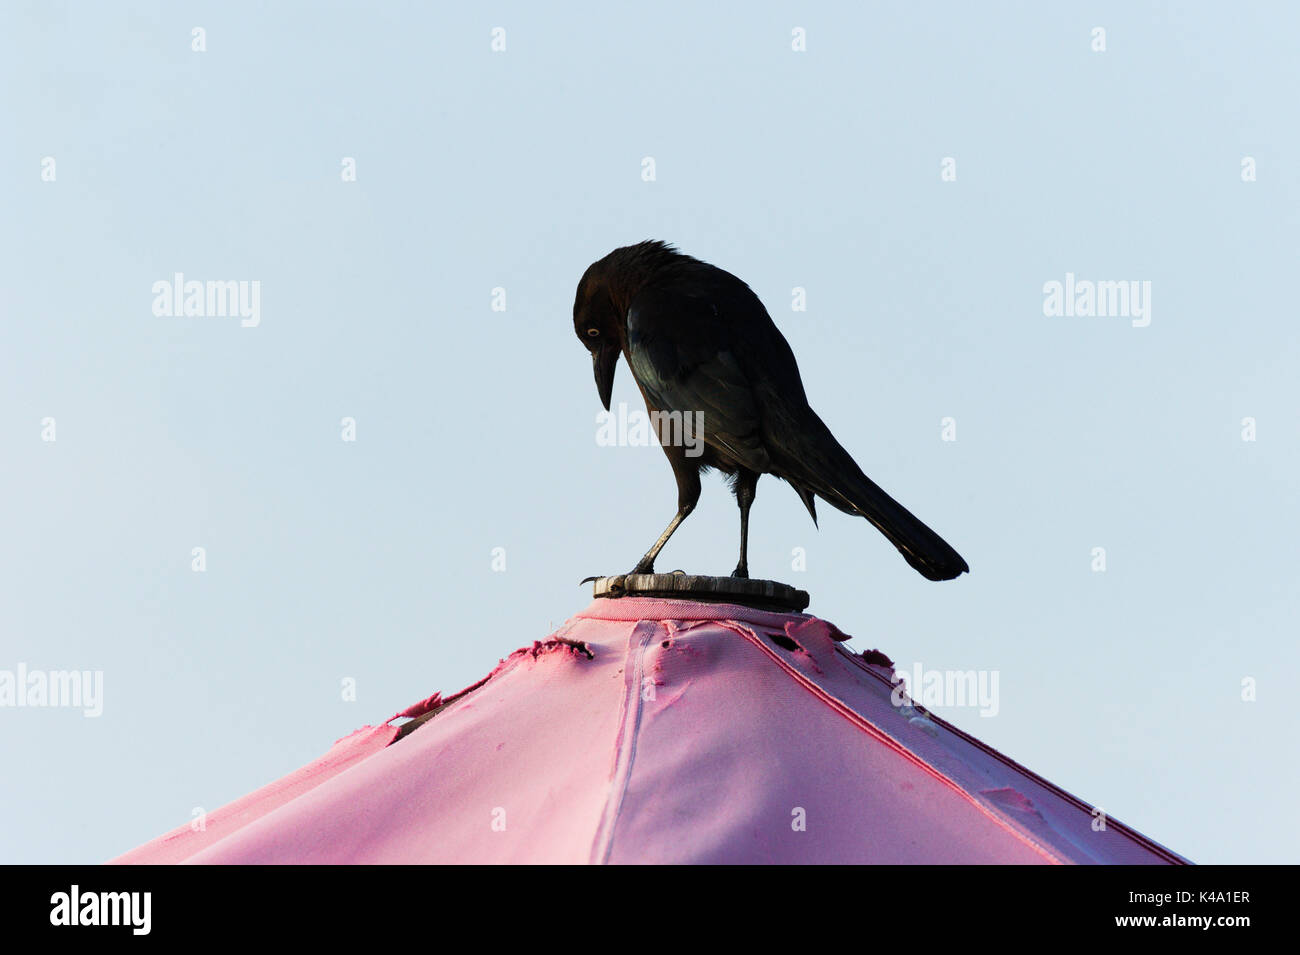 Raven bird black is a black Raven bird standing looking contemplative and serious. - Stock Image